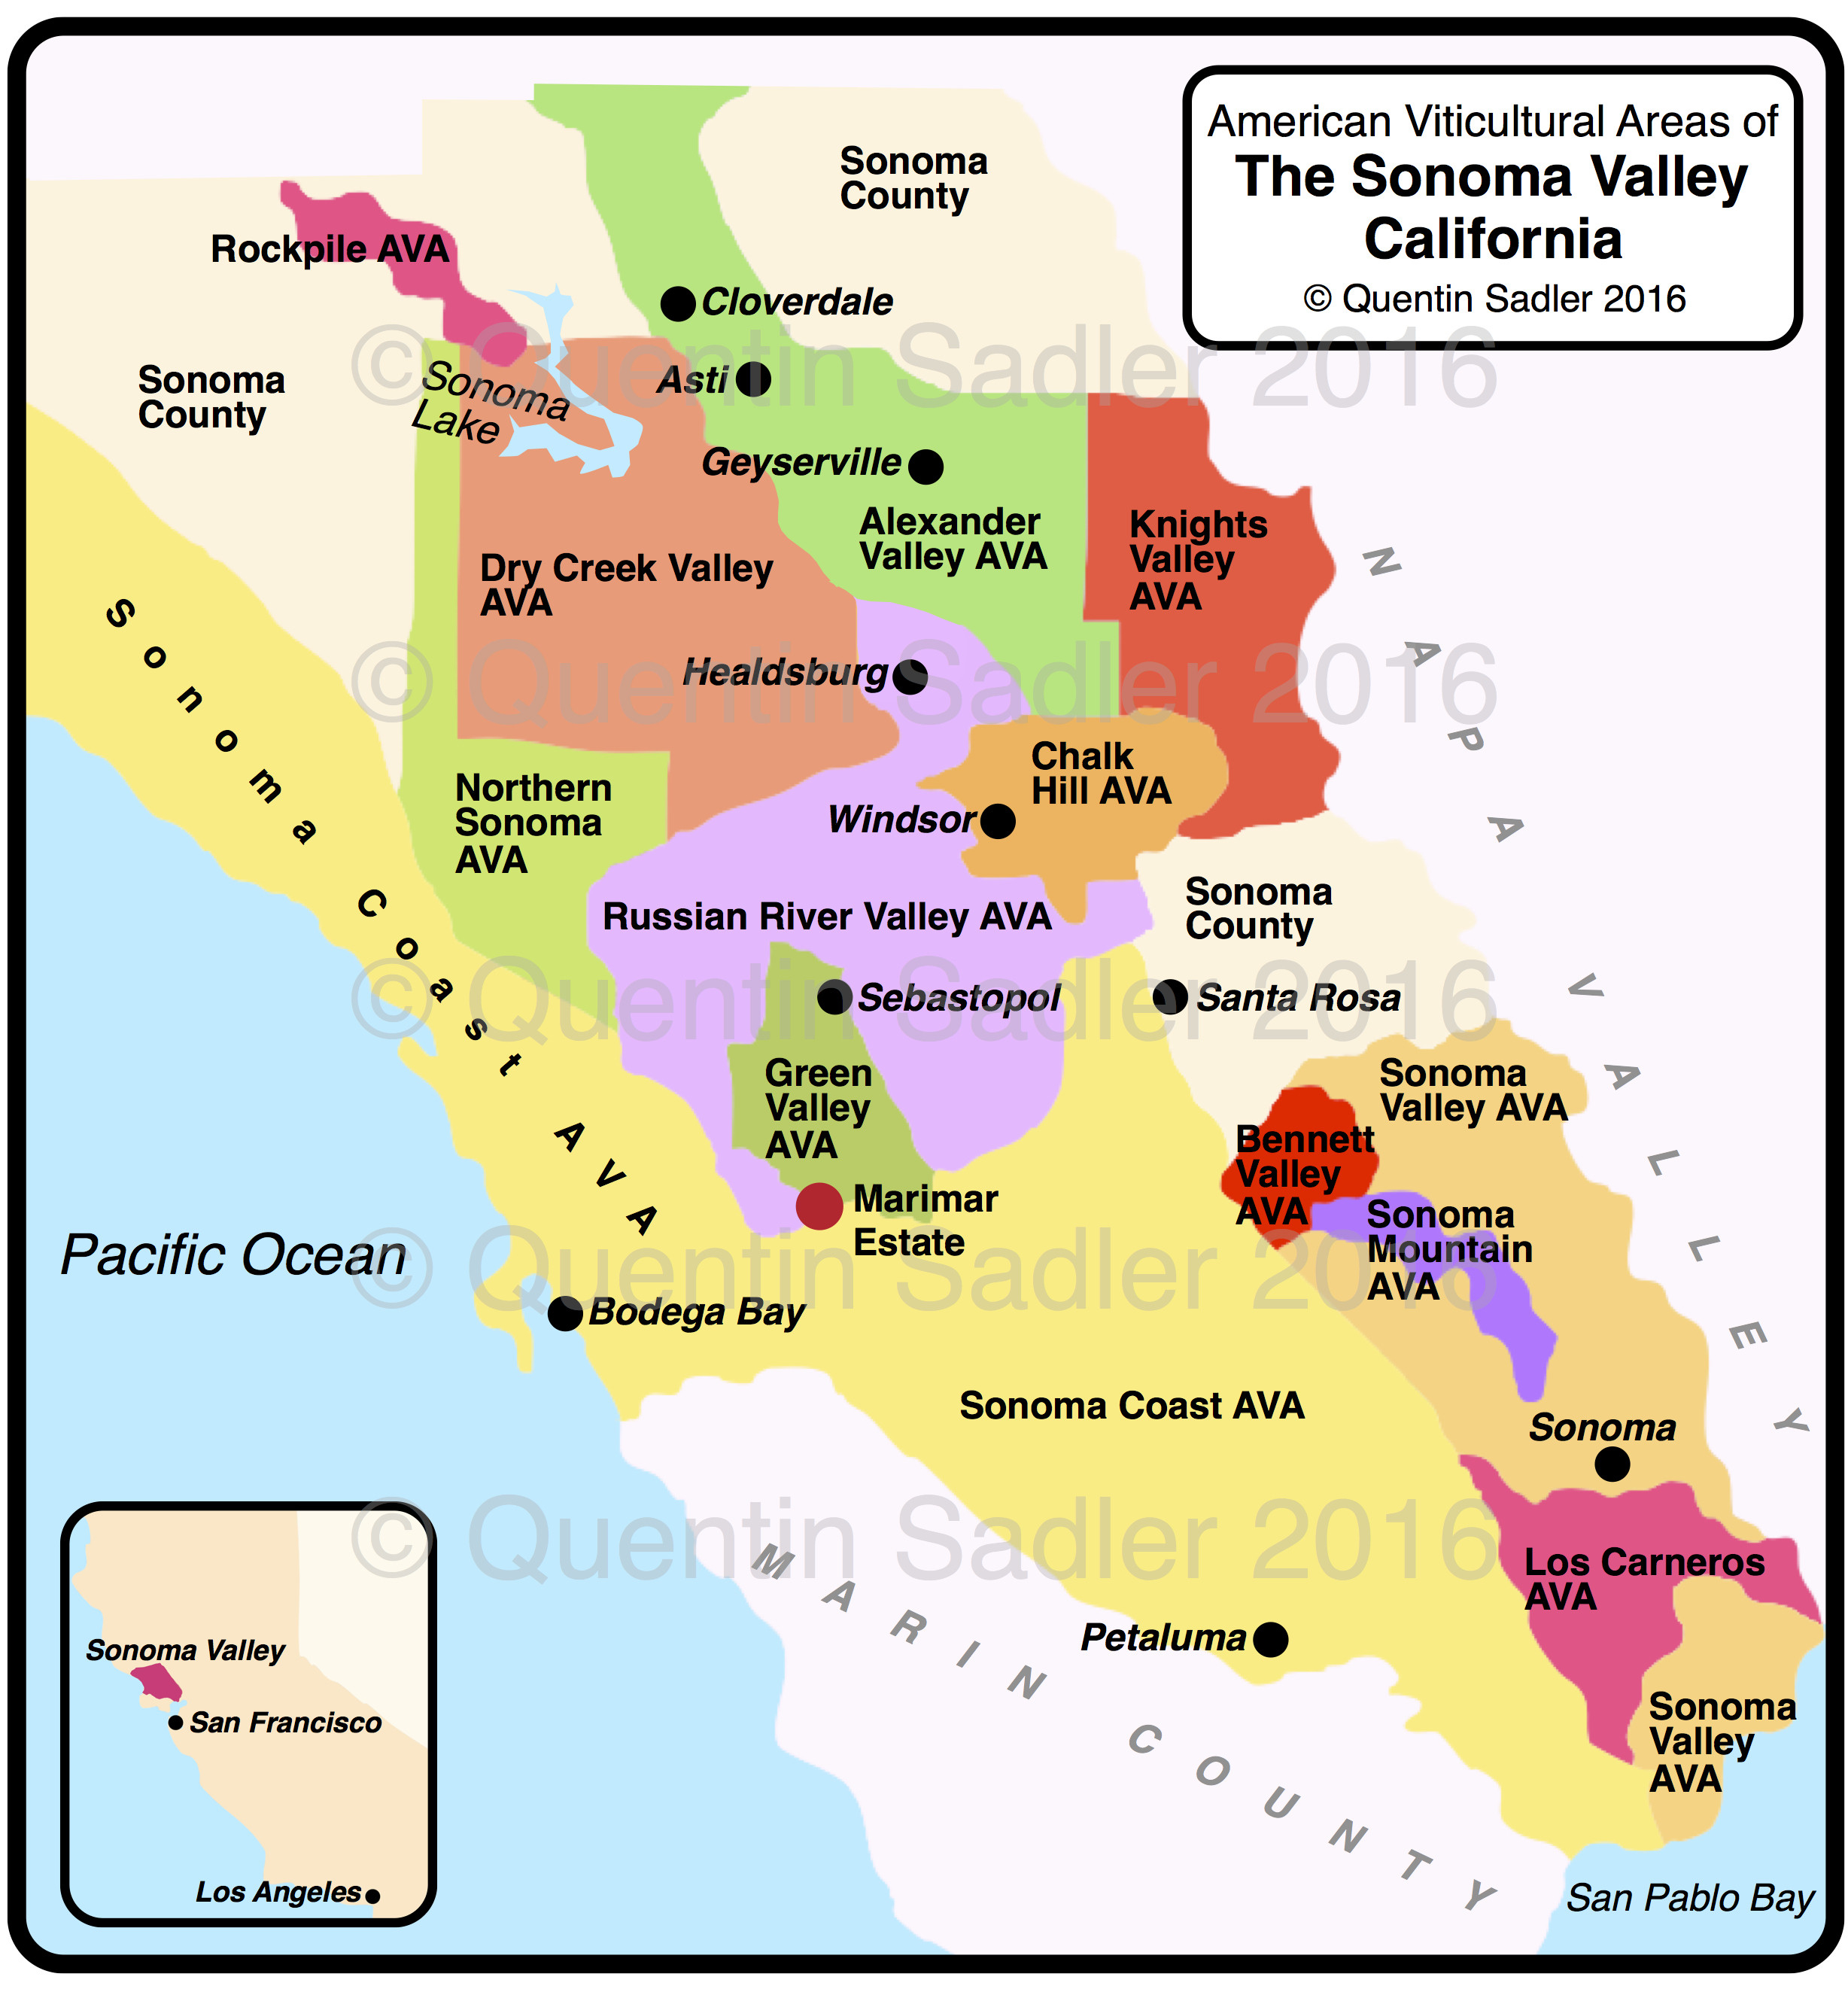 Southern California Brewery Map Detailed California - Ettcarworld - California Brewery Map